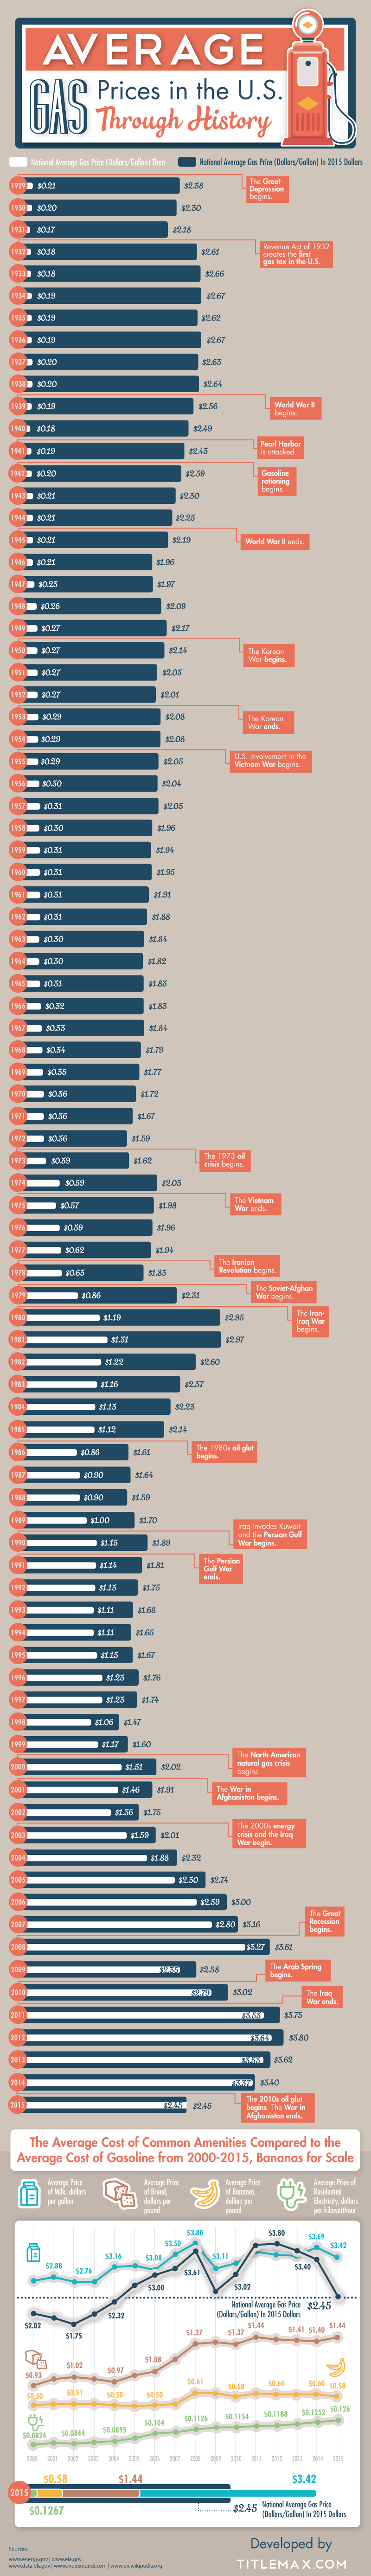 Average Gas Prices In U.S Through History #Infographic